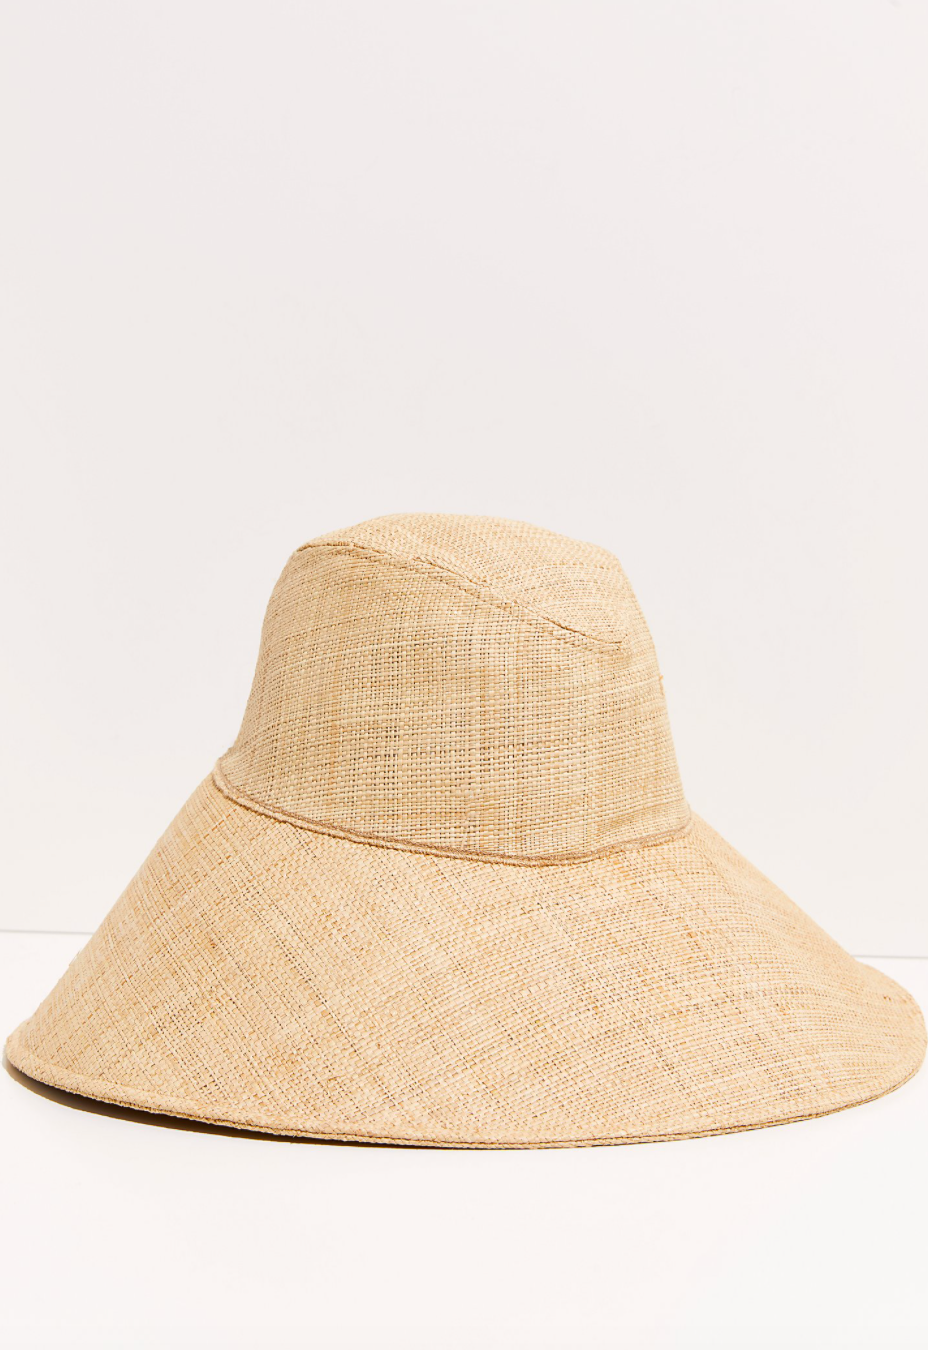 The Cove Hat